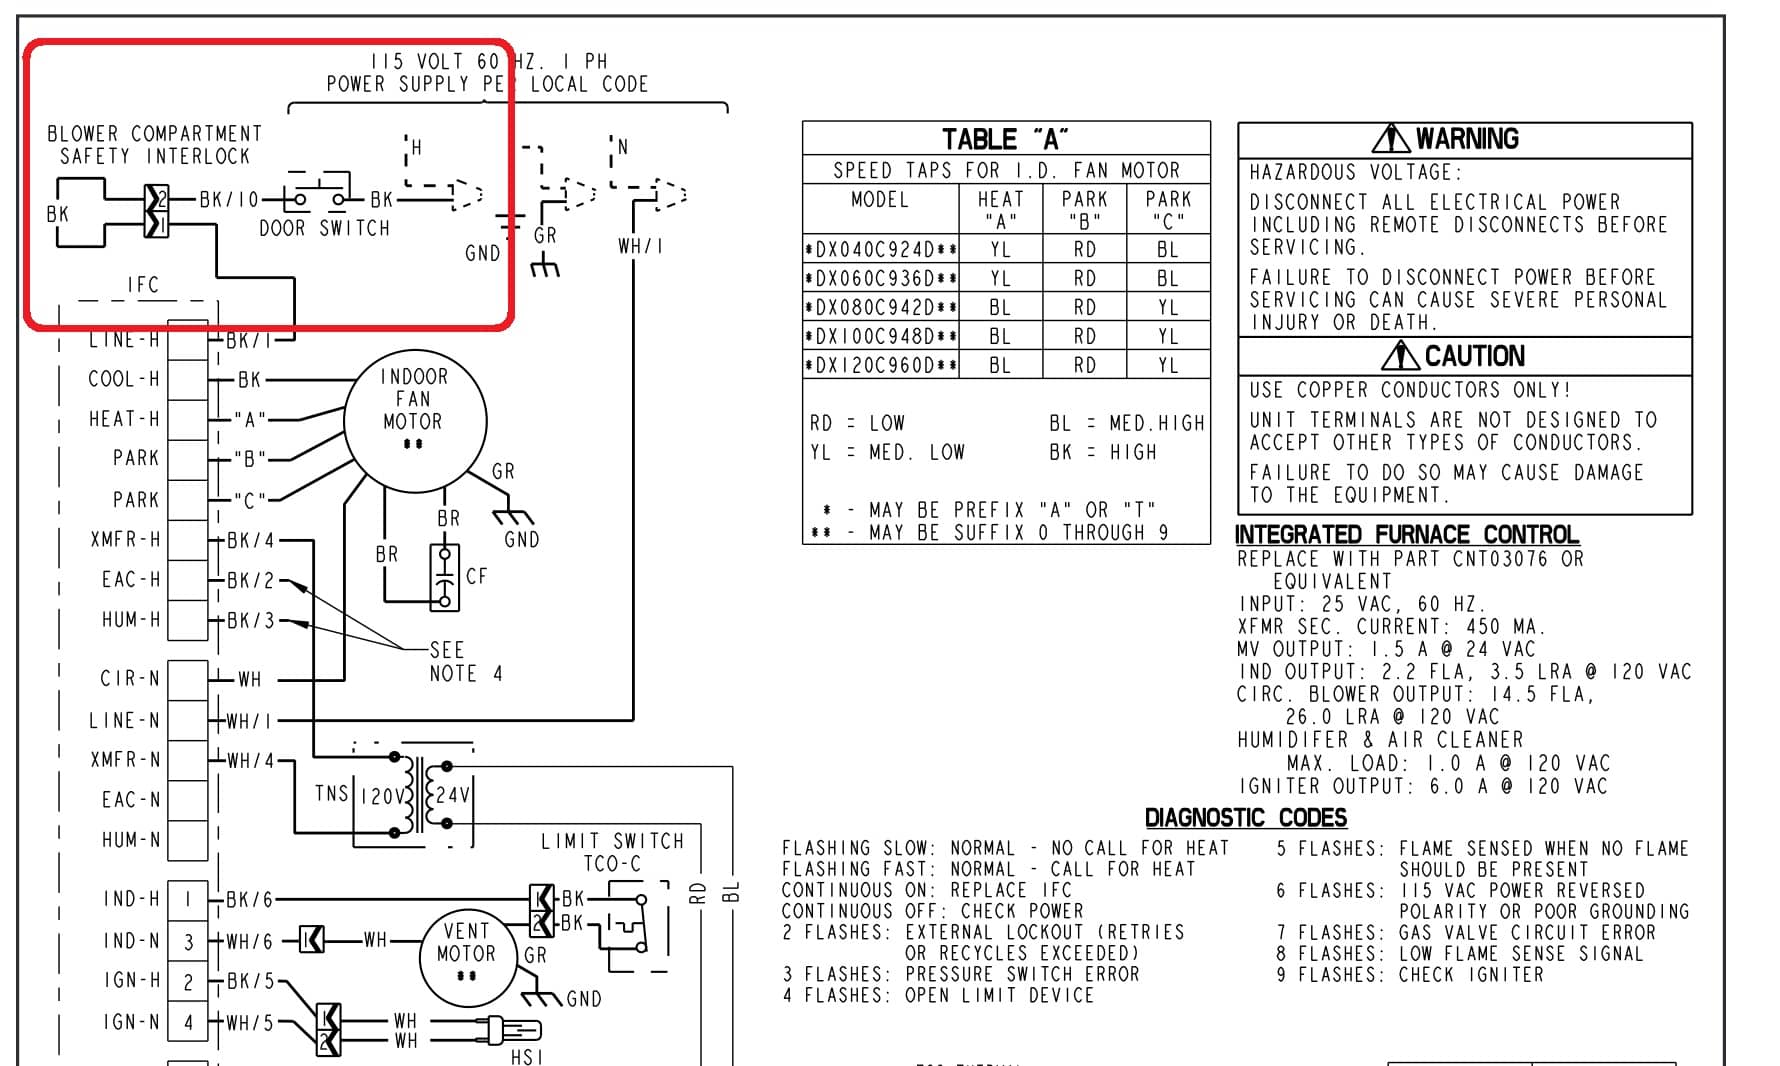 goodman a c wiring diagram with Blower Door Interlock Switch on Goodman Furnace Wiring Diagram B1370738 besides 00001 also Rv Electrical Outlet besides Wiring Diagrams Goodman Air Handler Single Phase as well Techsupportcenter.